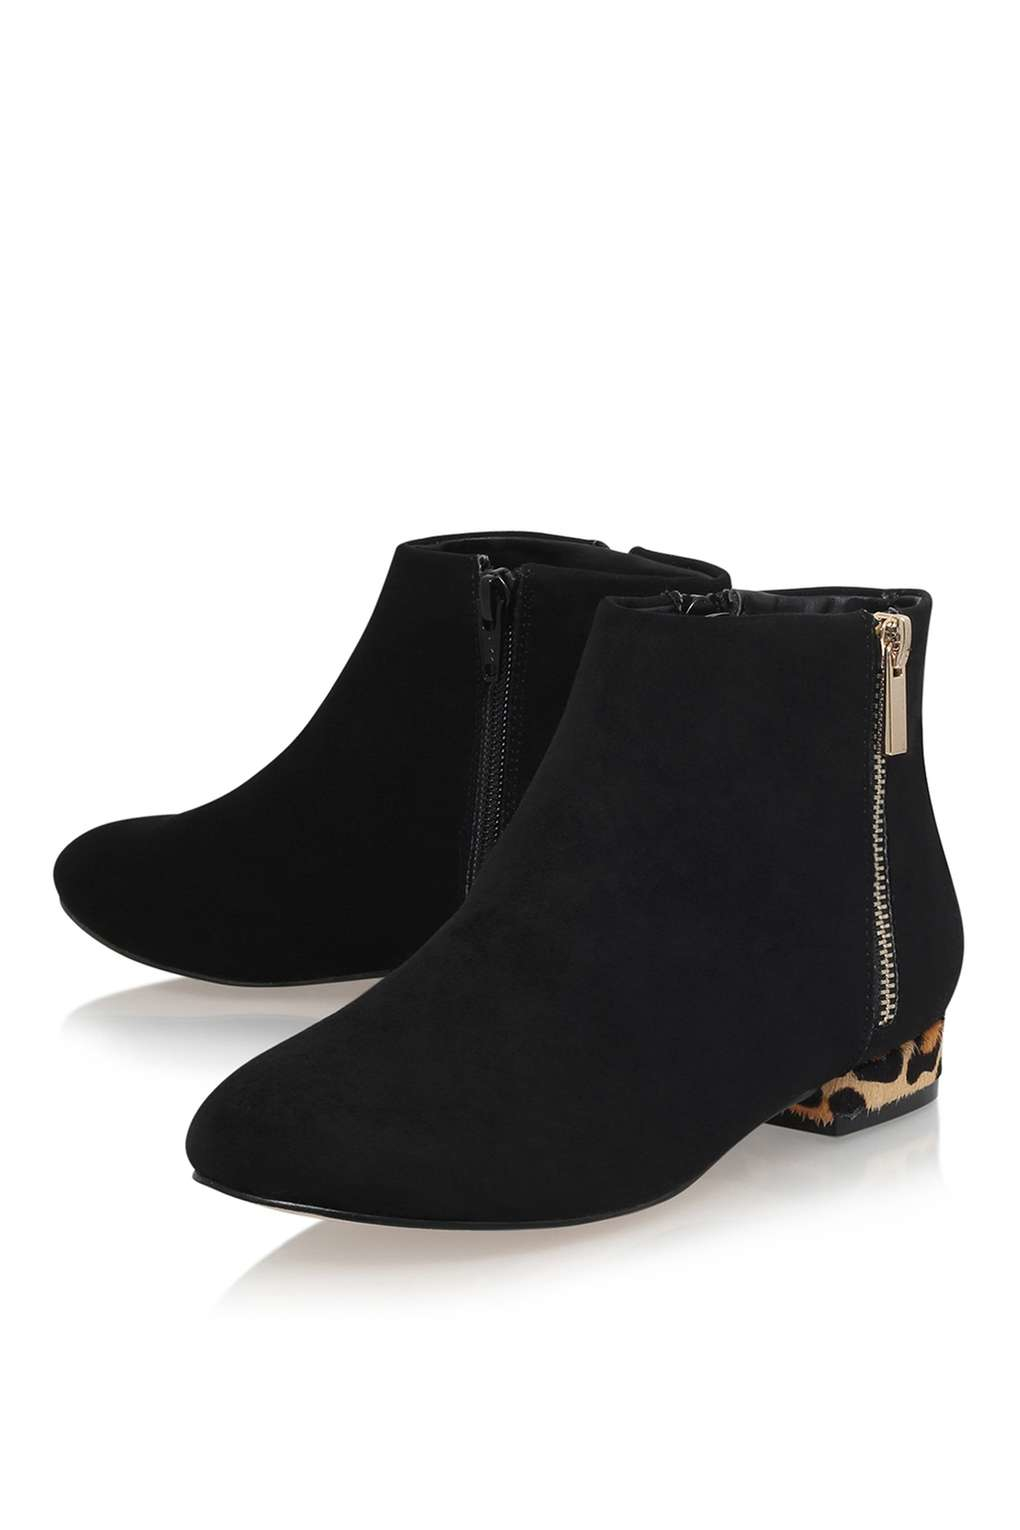 TOPSHOP Soho Ankle Boots By Miss Kg in Black